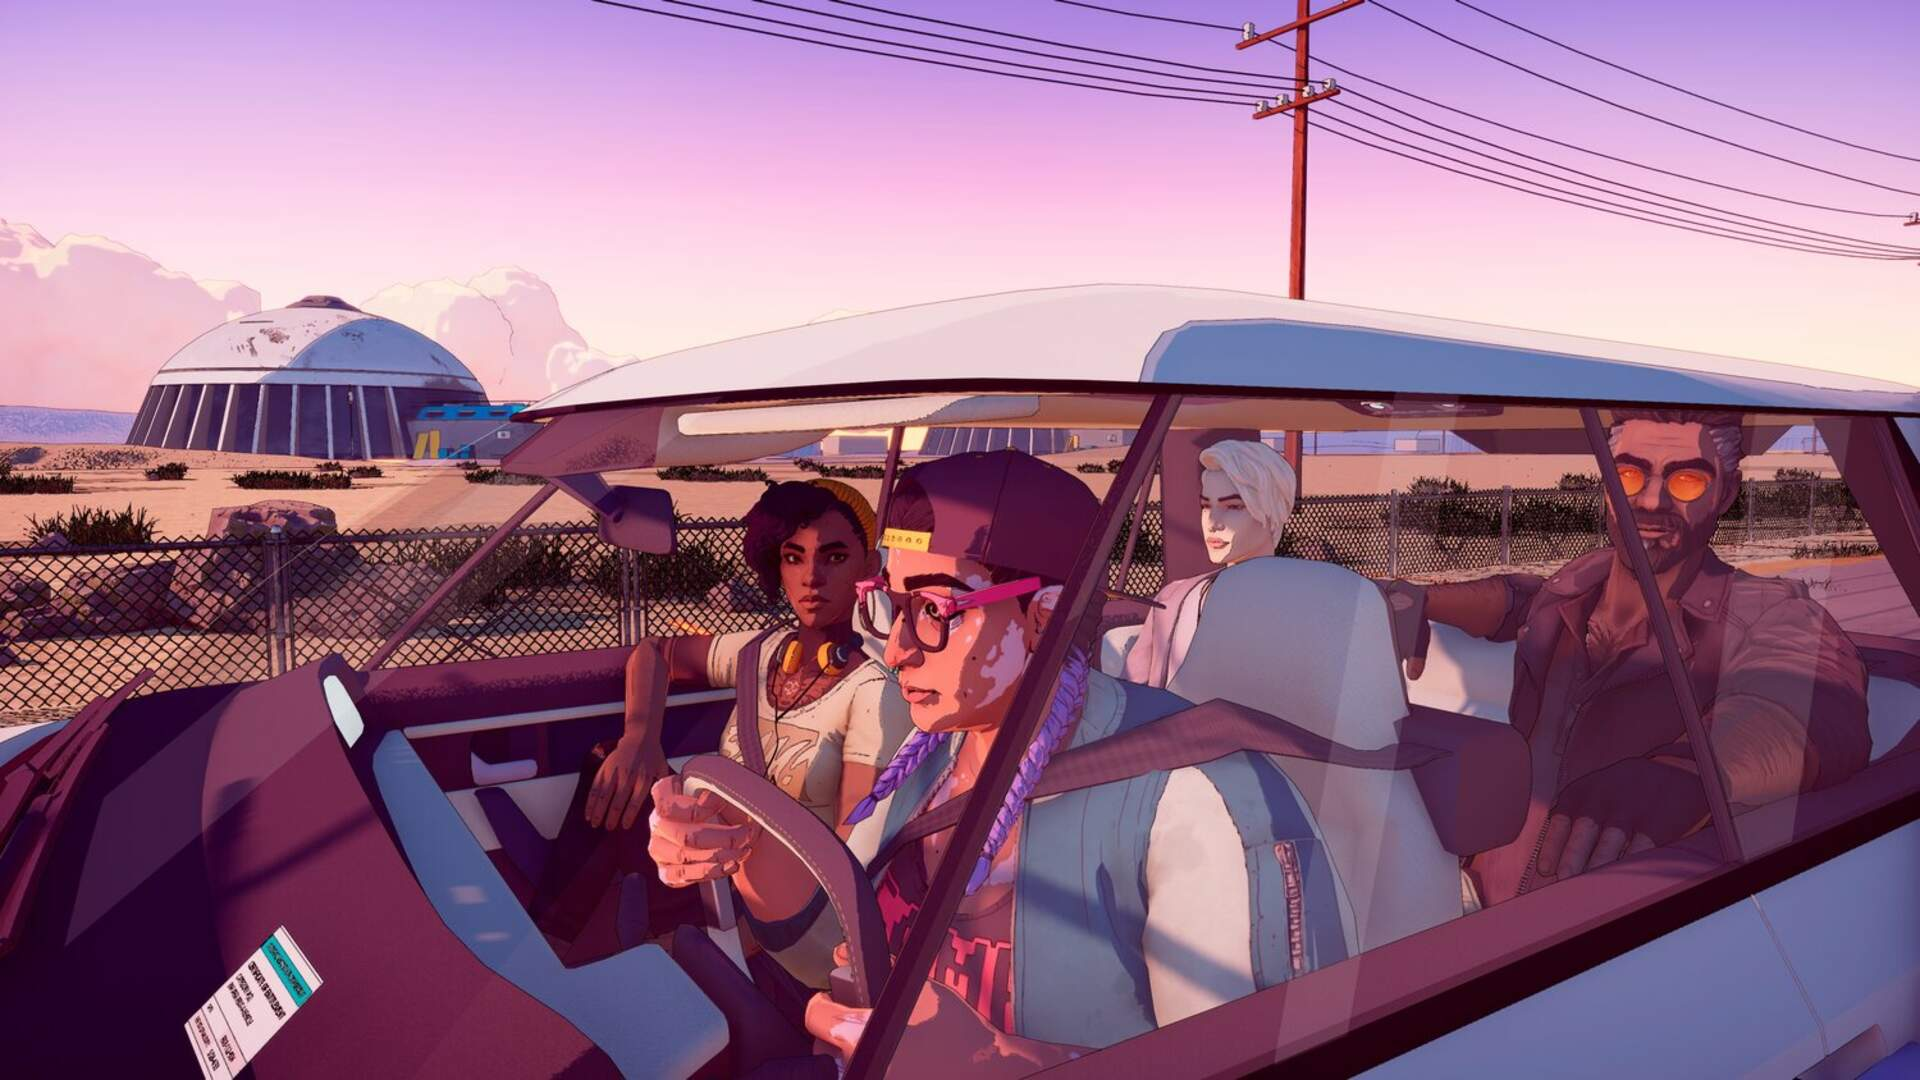 Dustborn, the Next Game From the Dreamfall Chapters Devs, Is a Neo-Western Road Trip